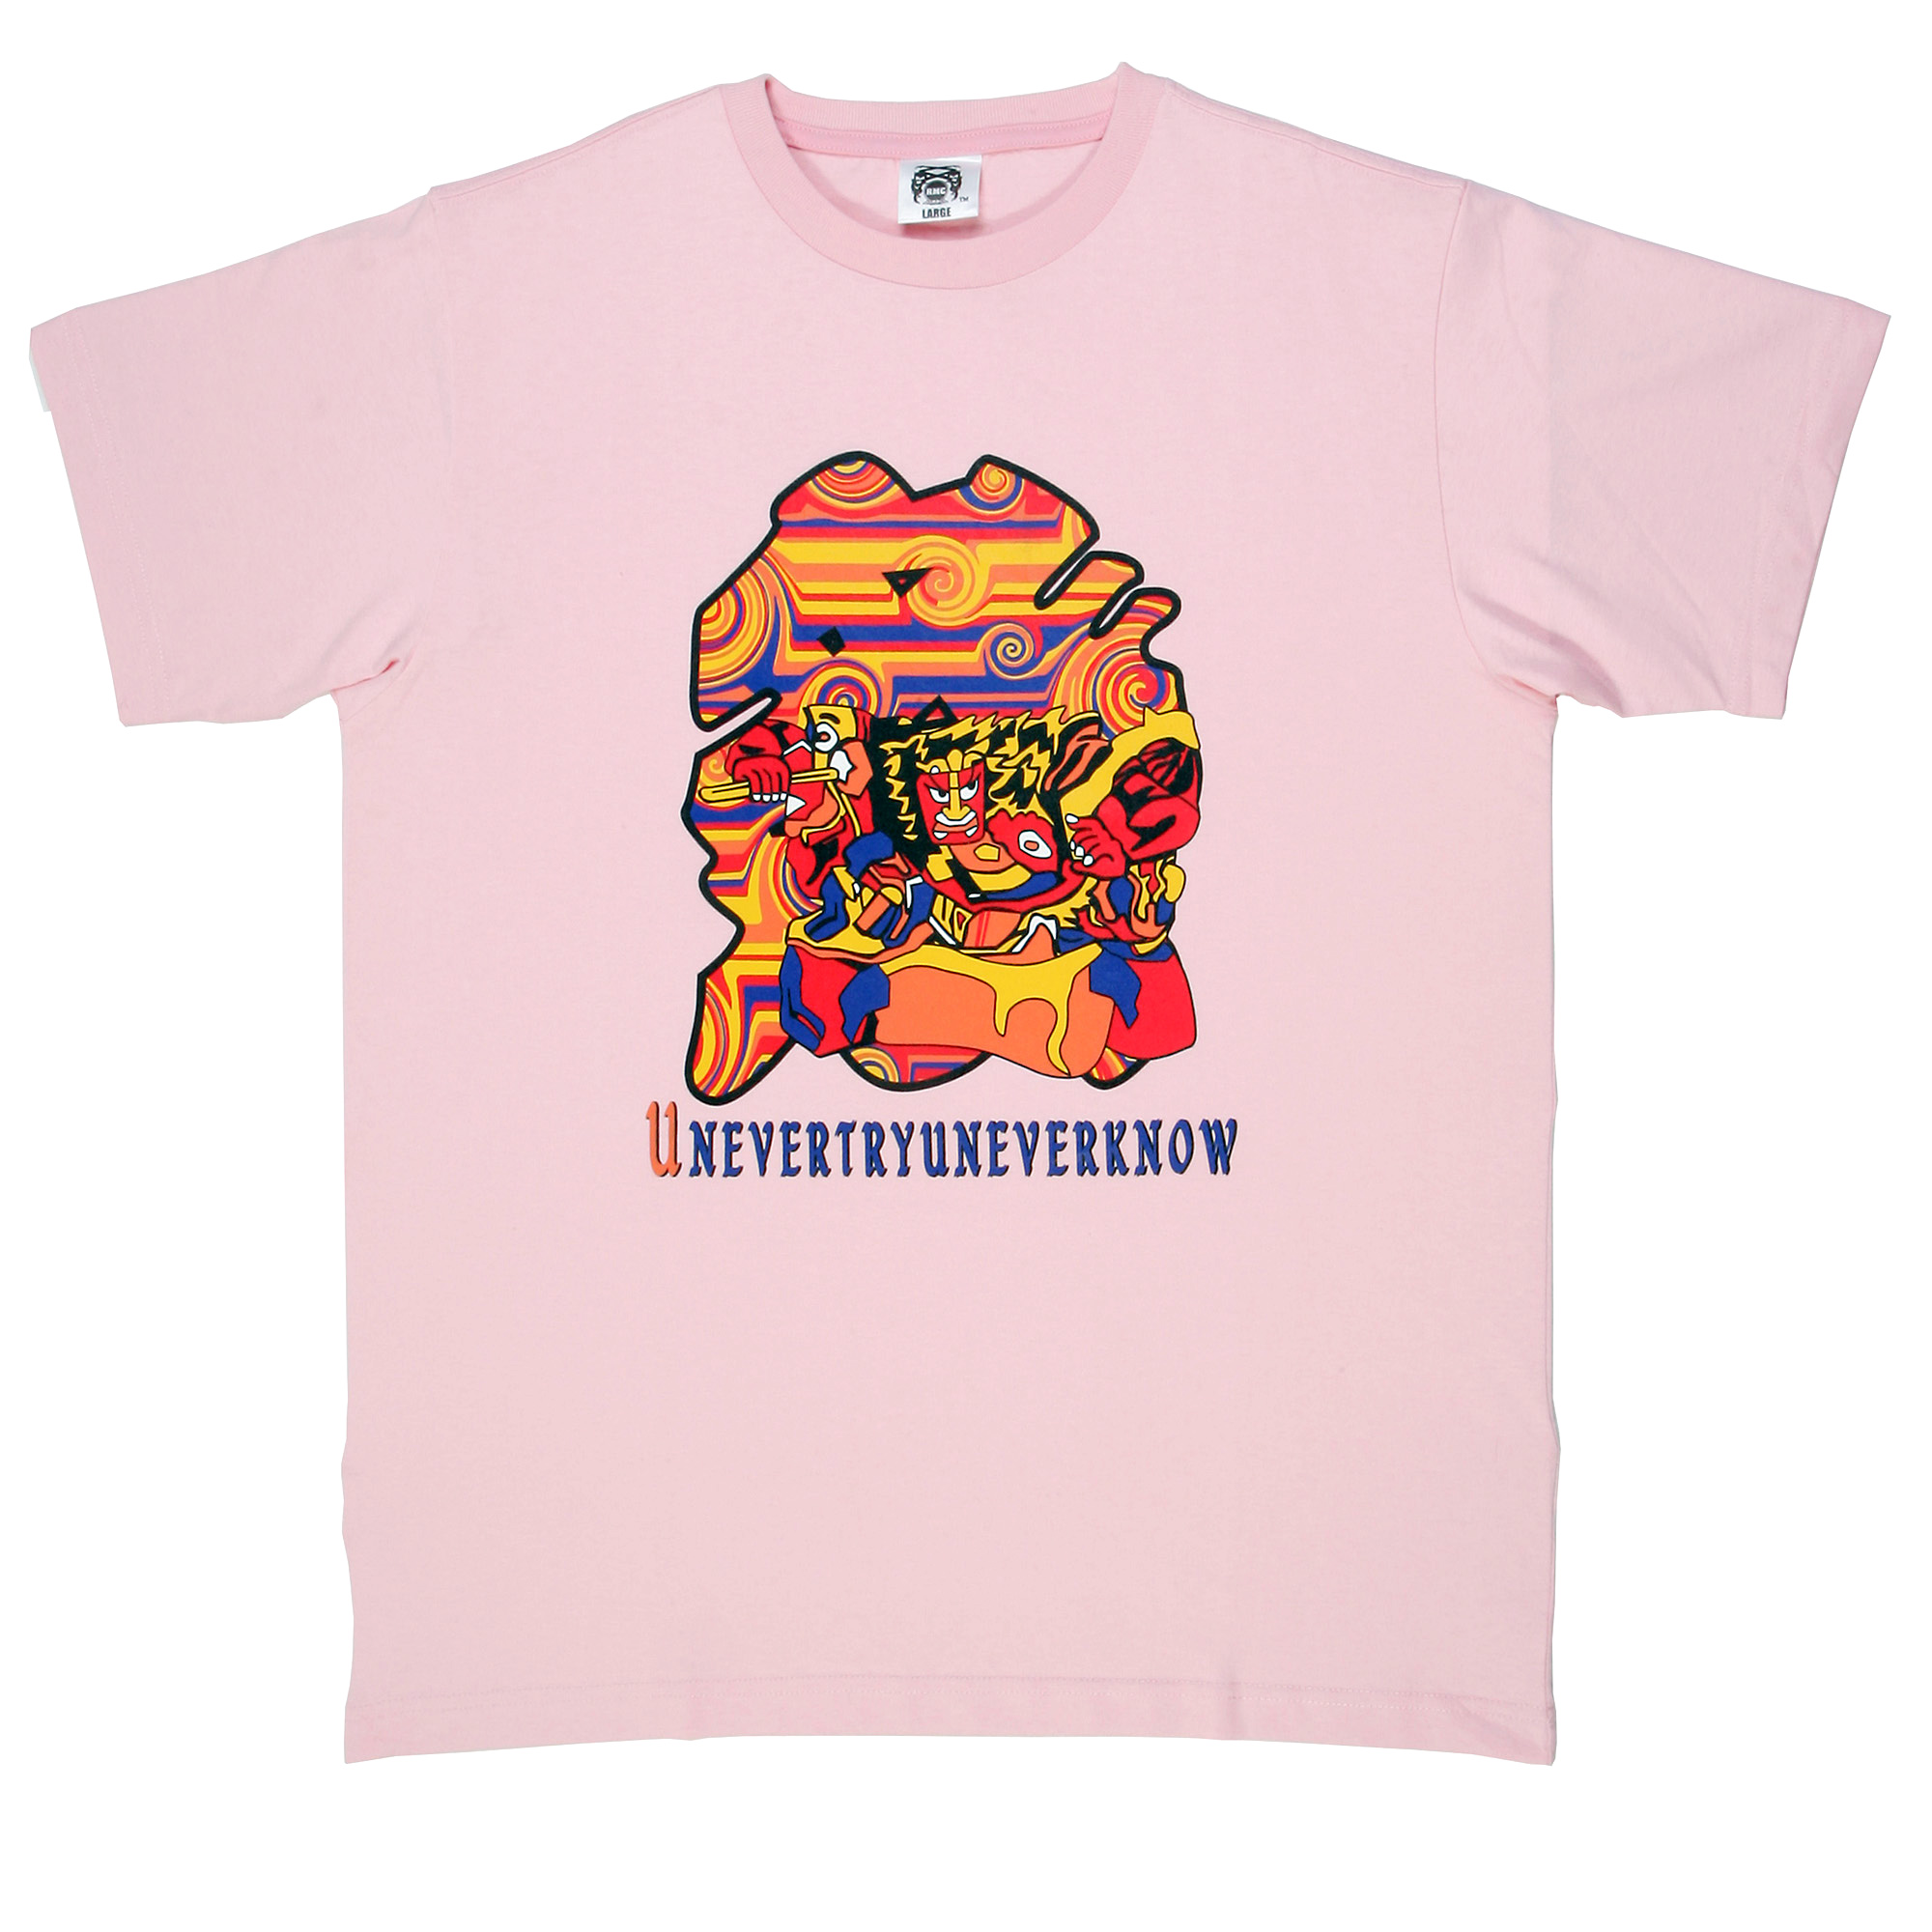 RMC Jeans pink t-shirt